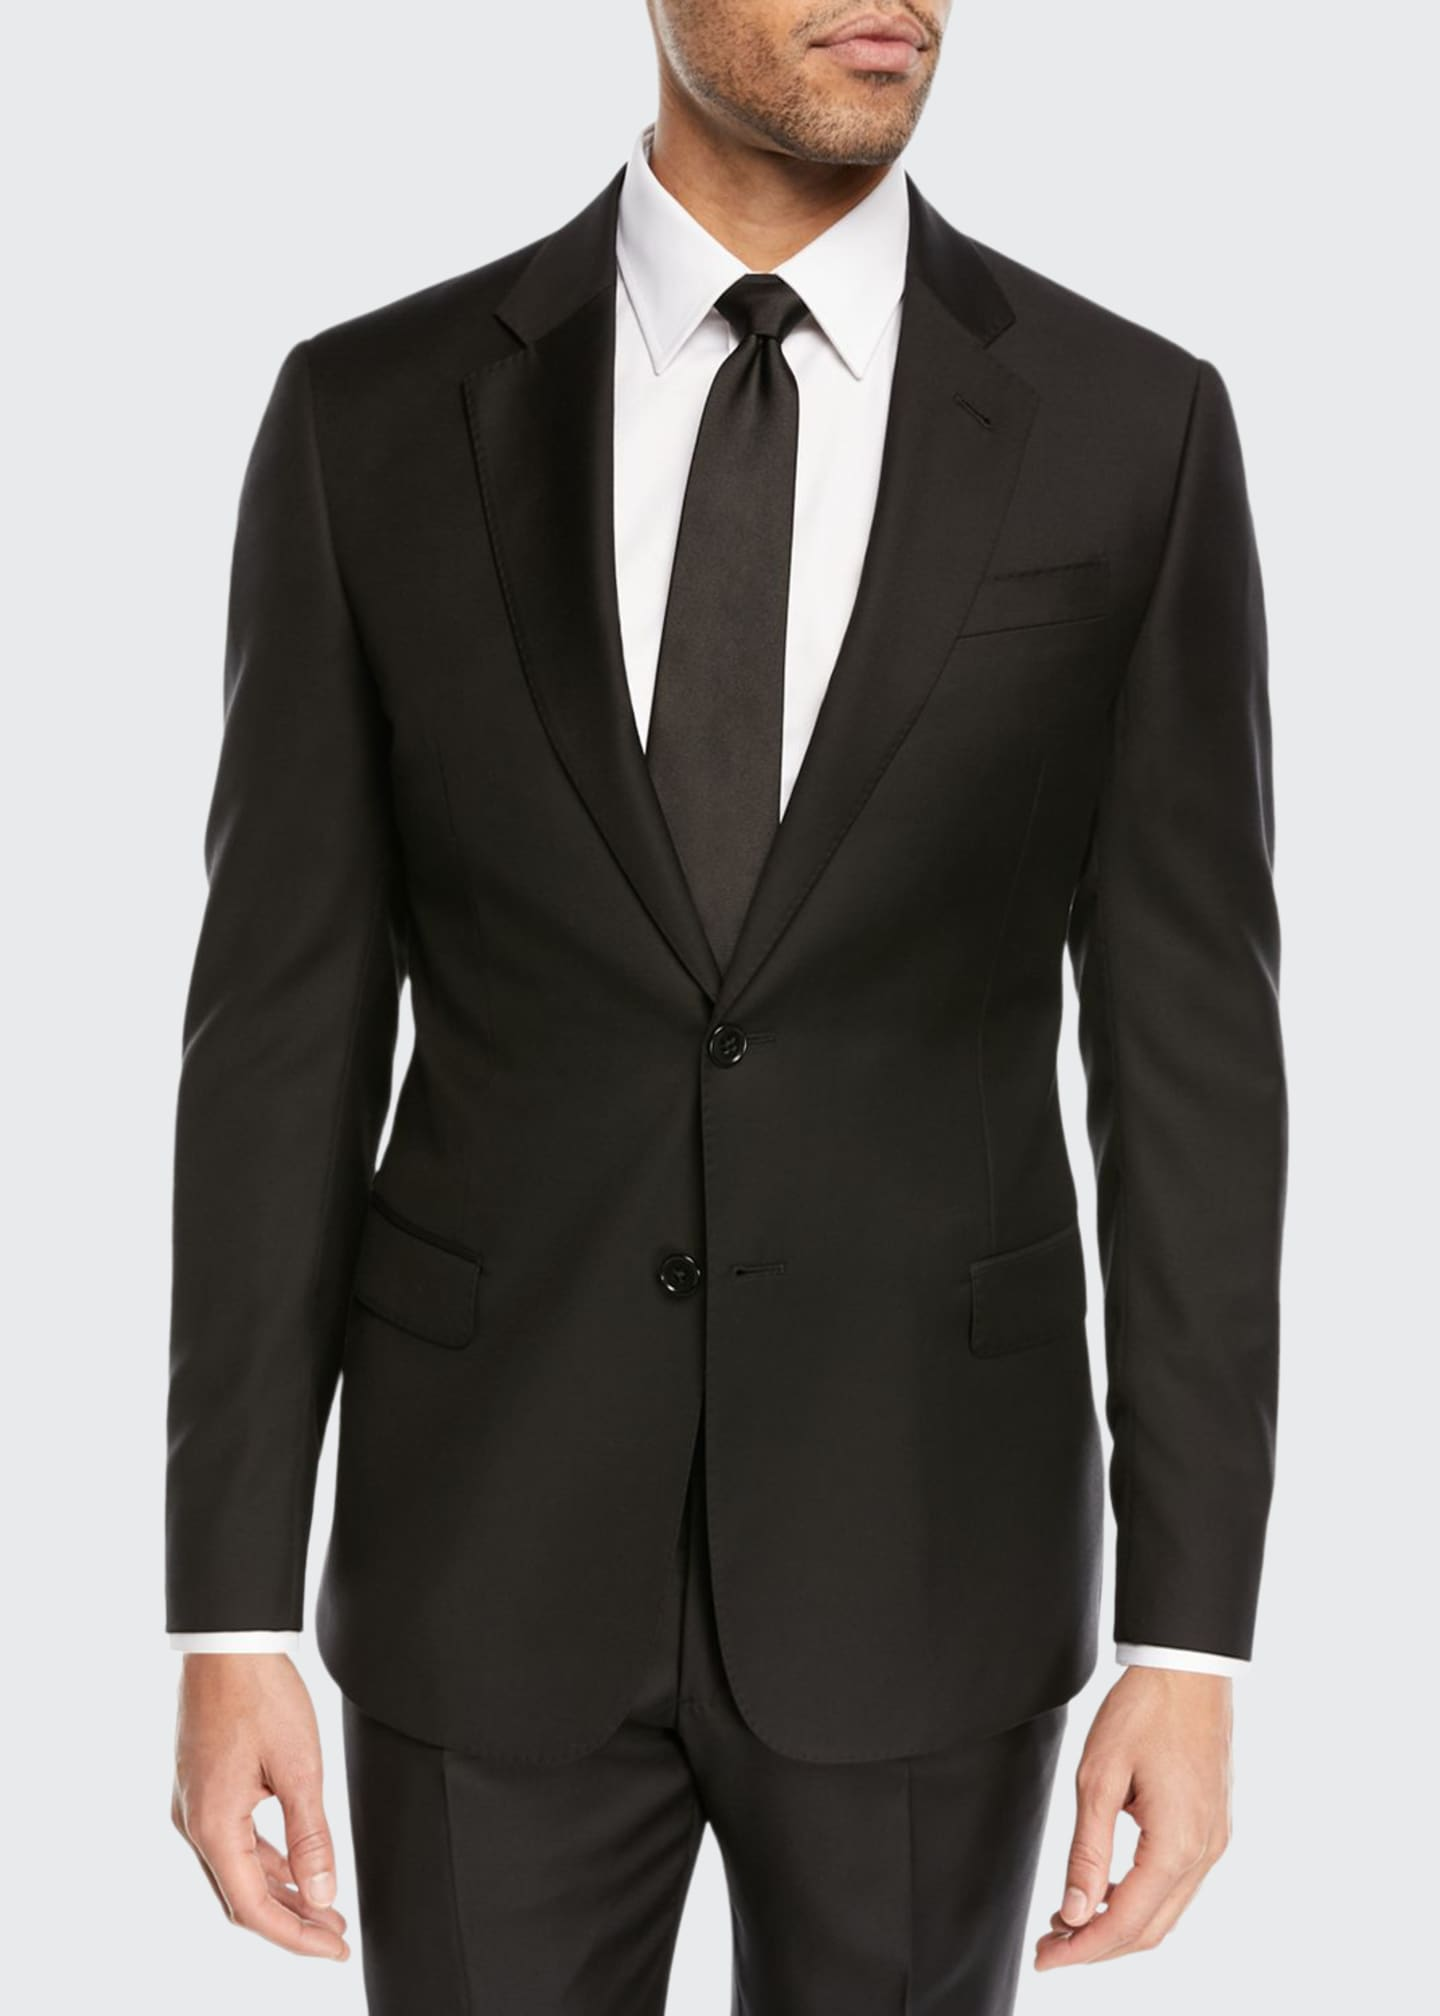 Emporio Armani Super 130s Wool Two-Piece Suit, Black